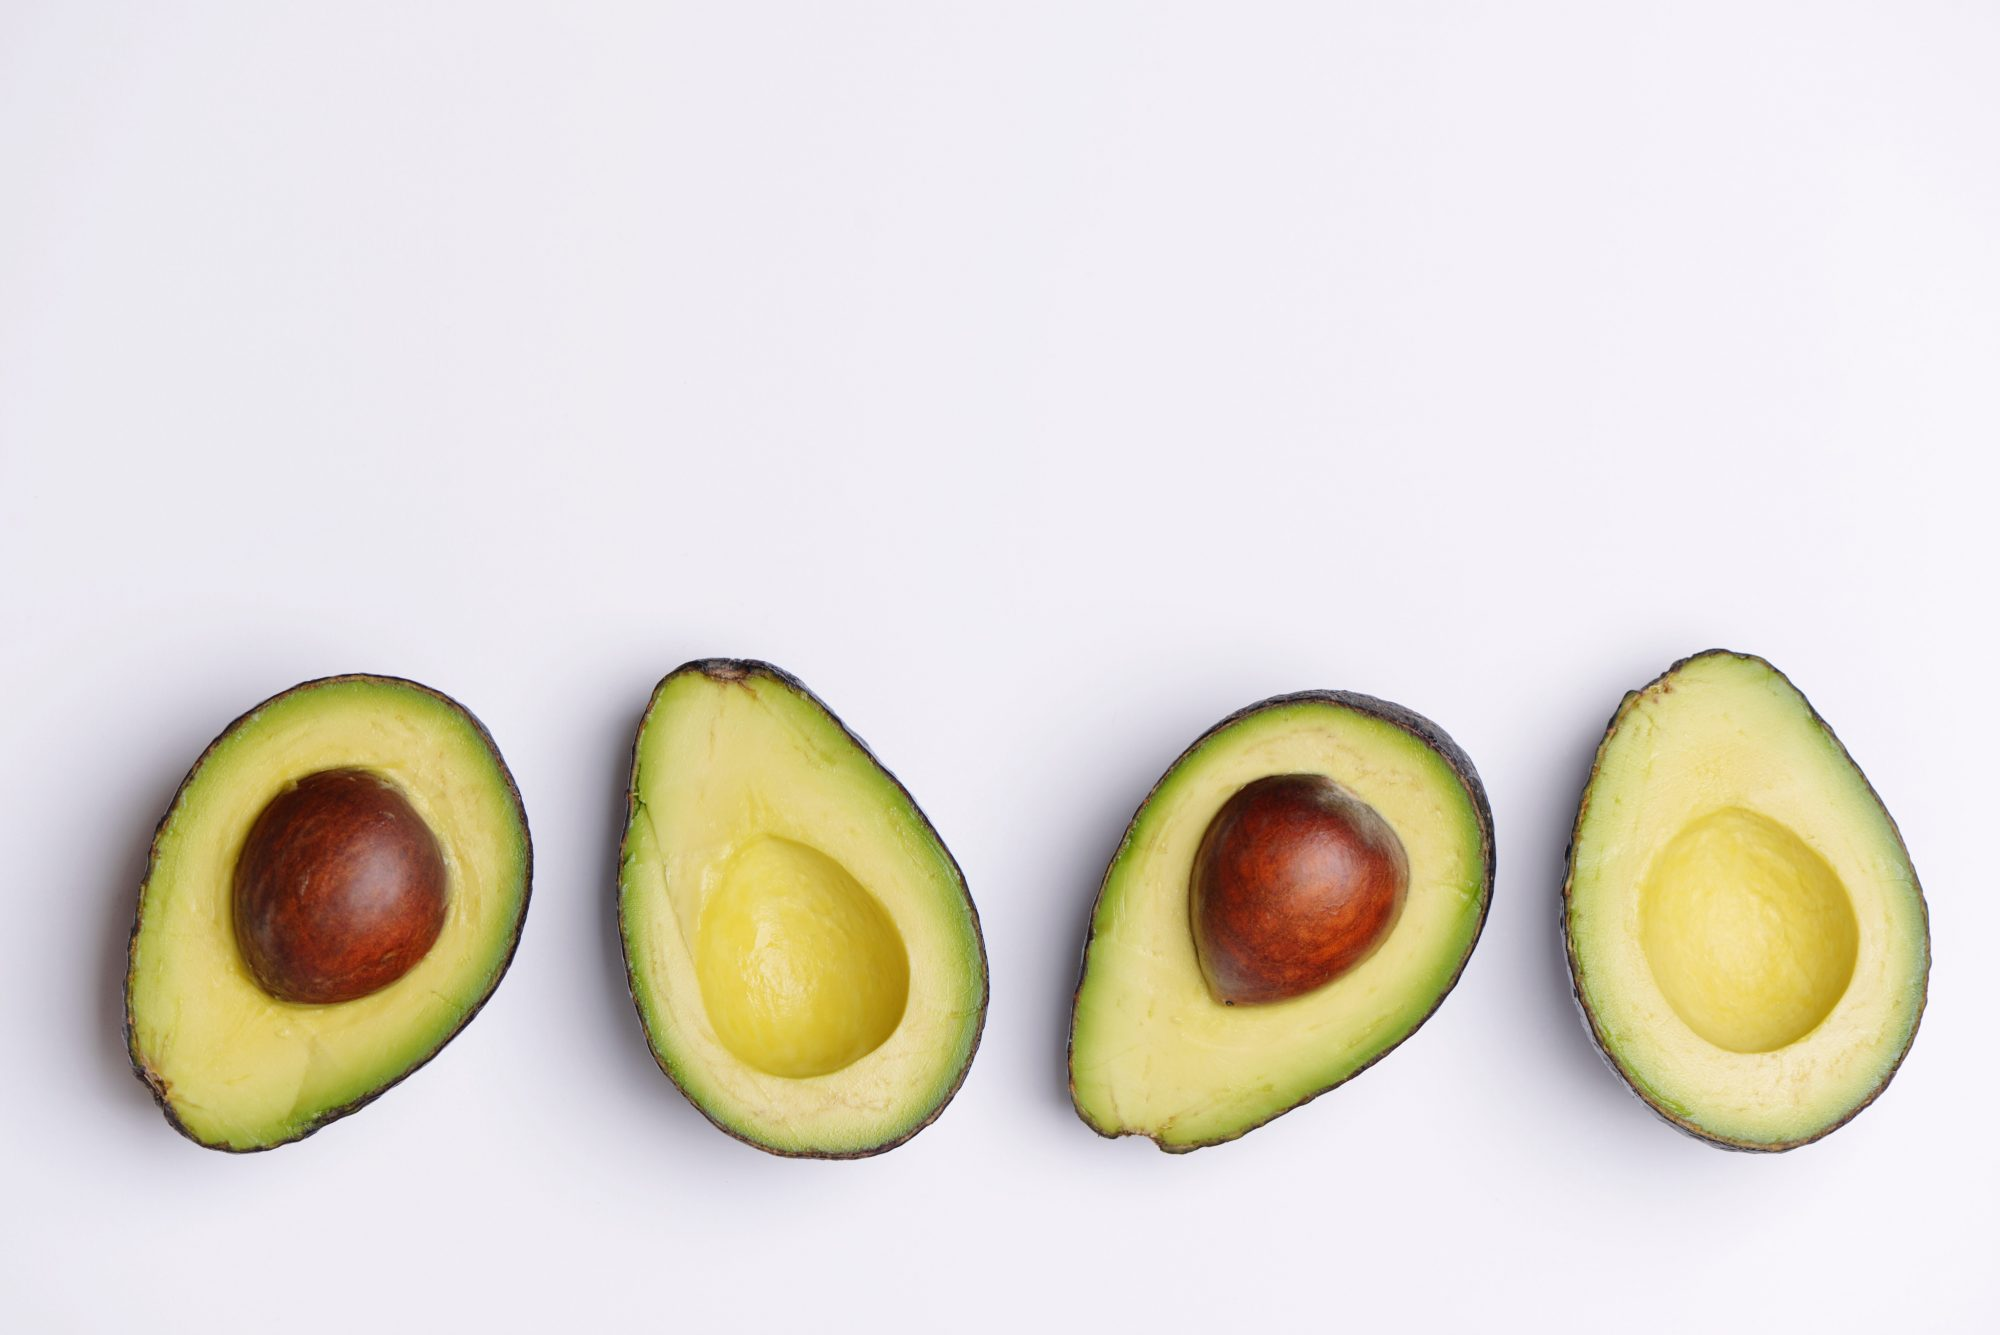 Avocados on white background Getty 4/27/20